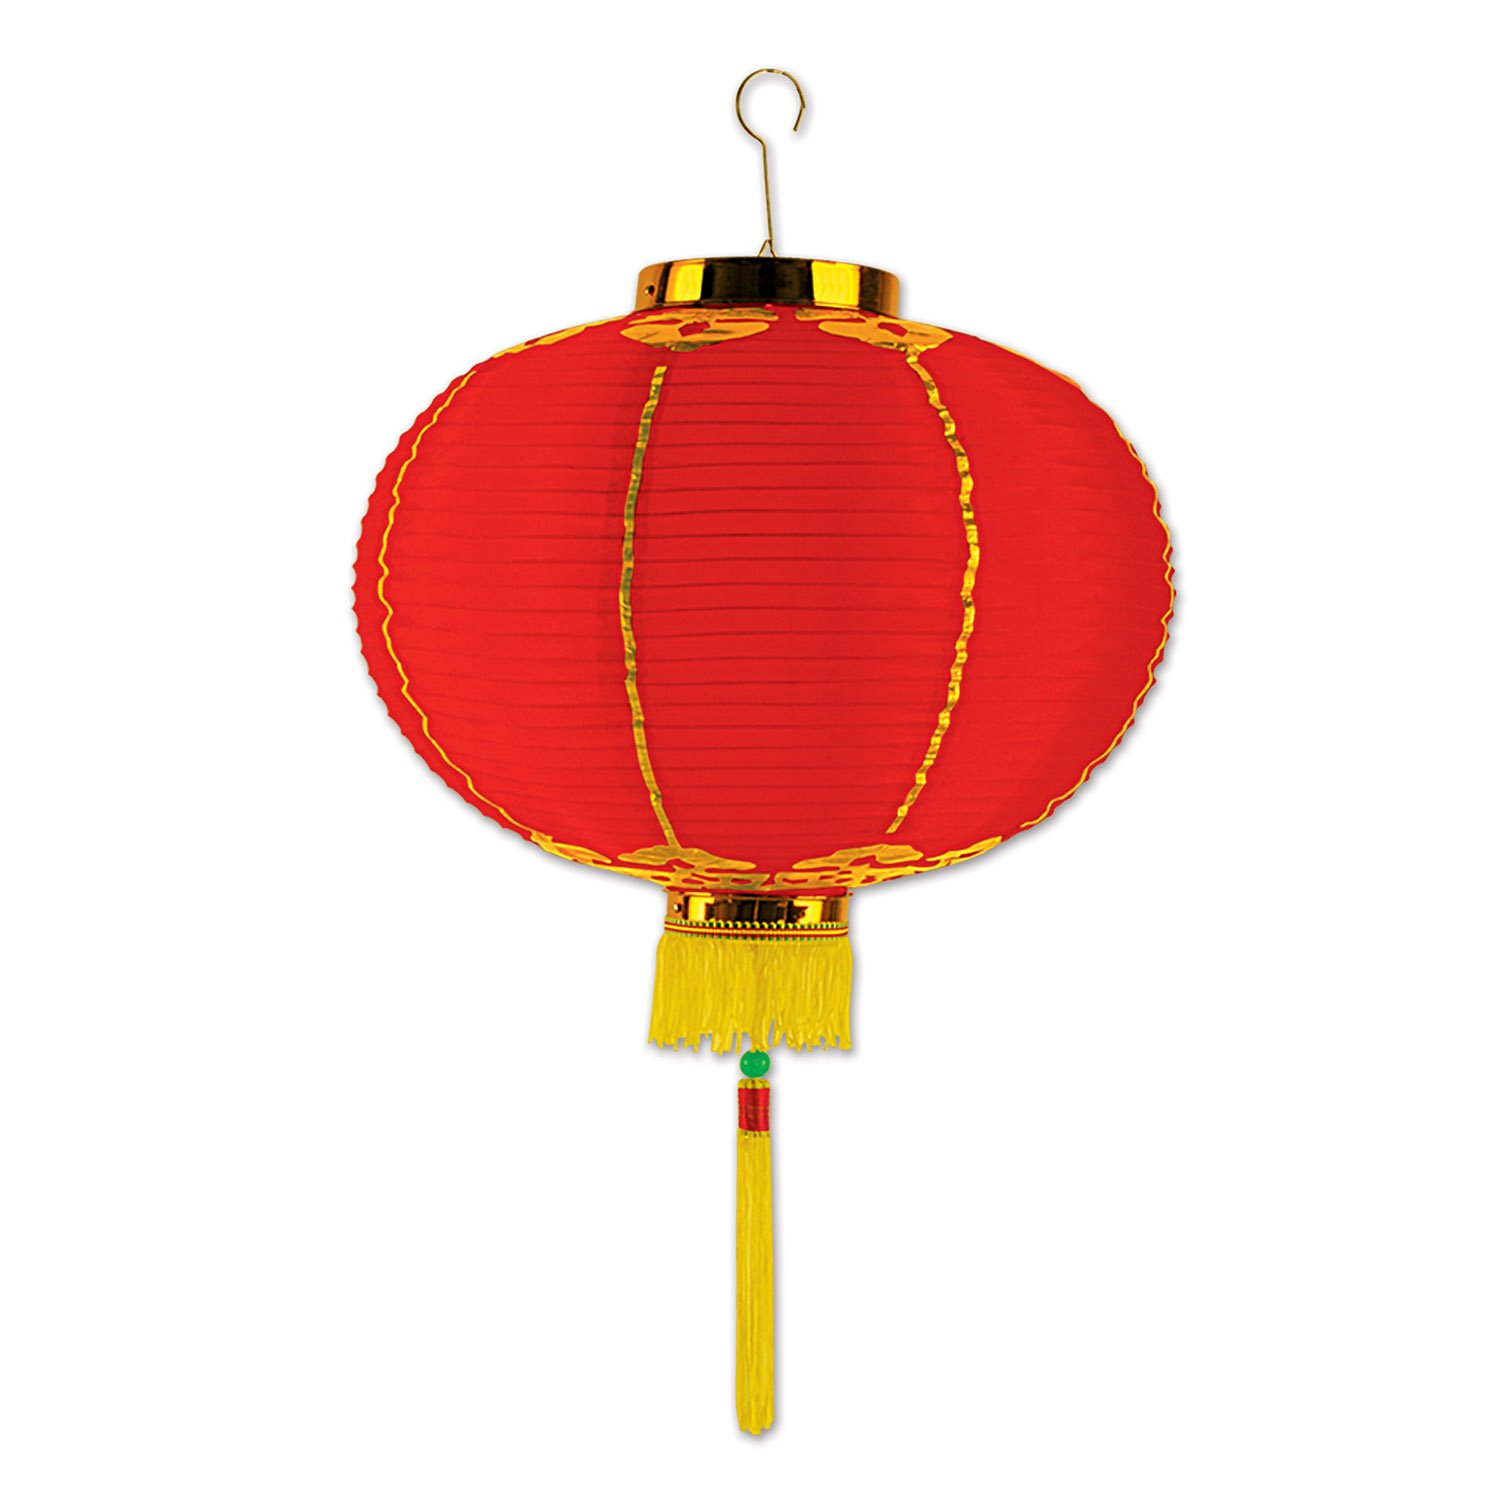 Asian Good Luck Small Lantern Red & Gold with Tassels